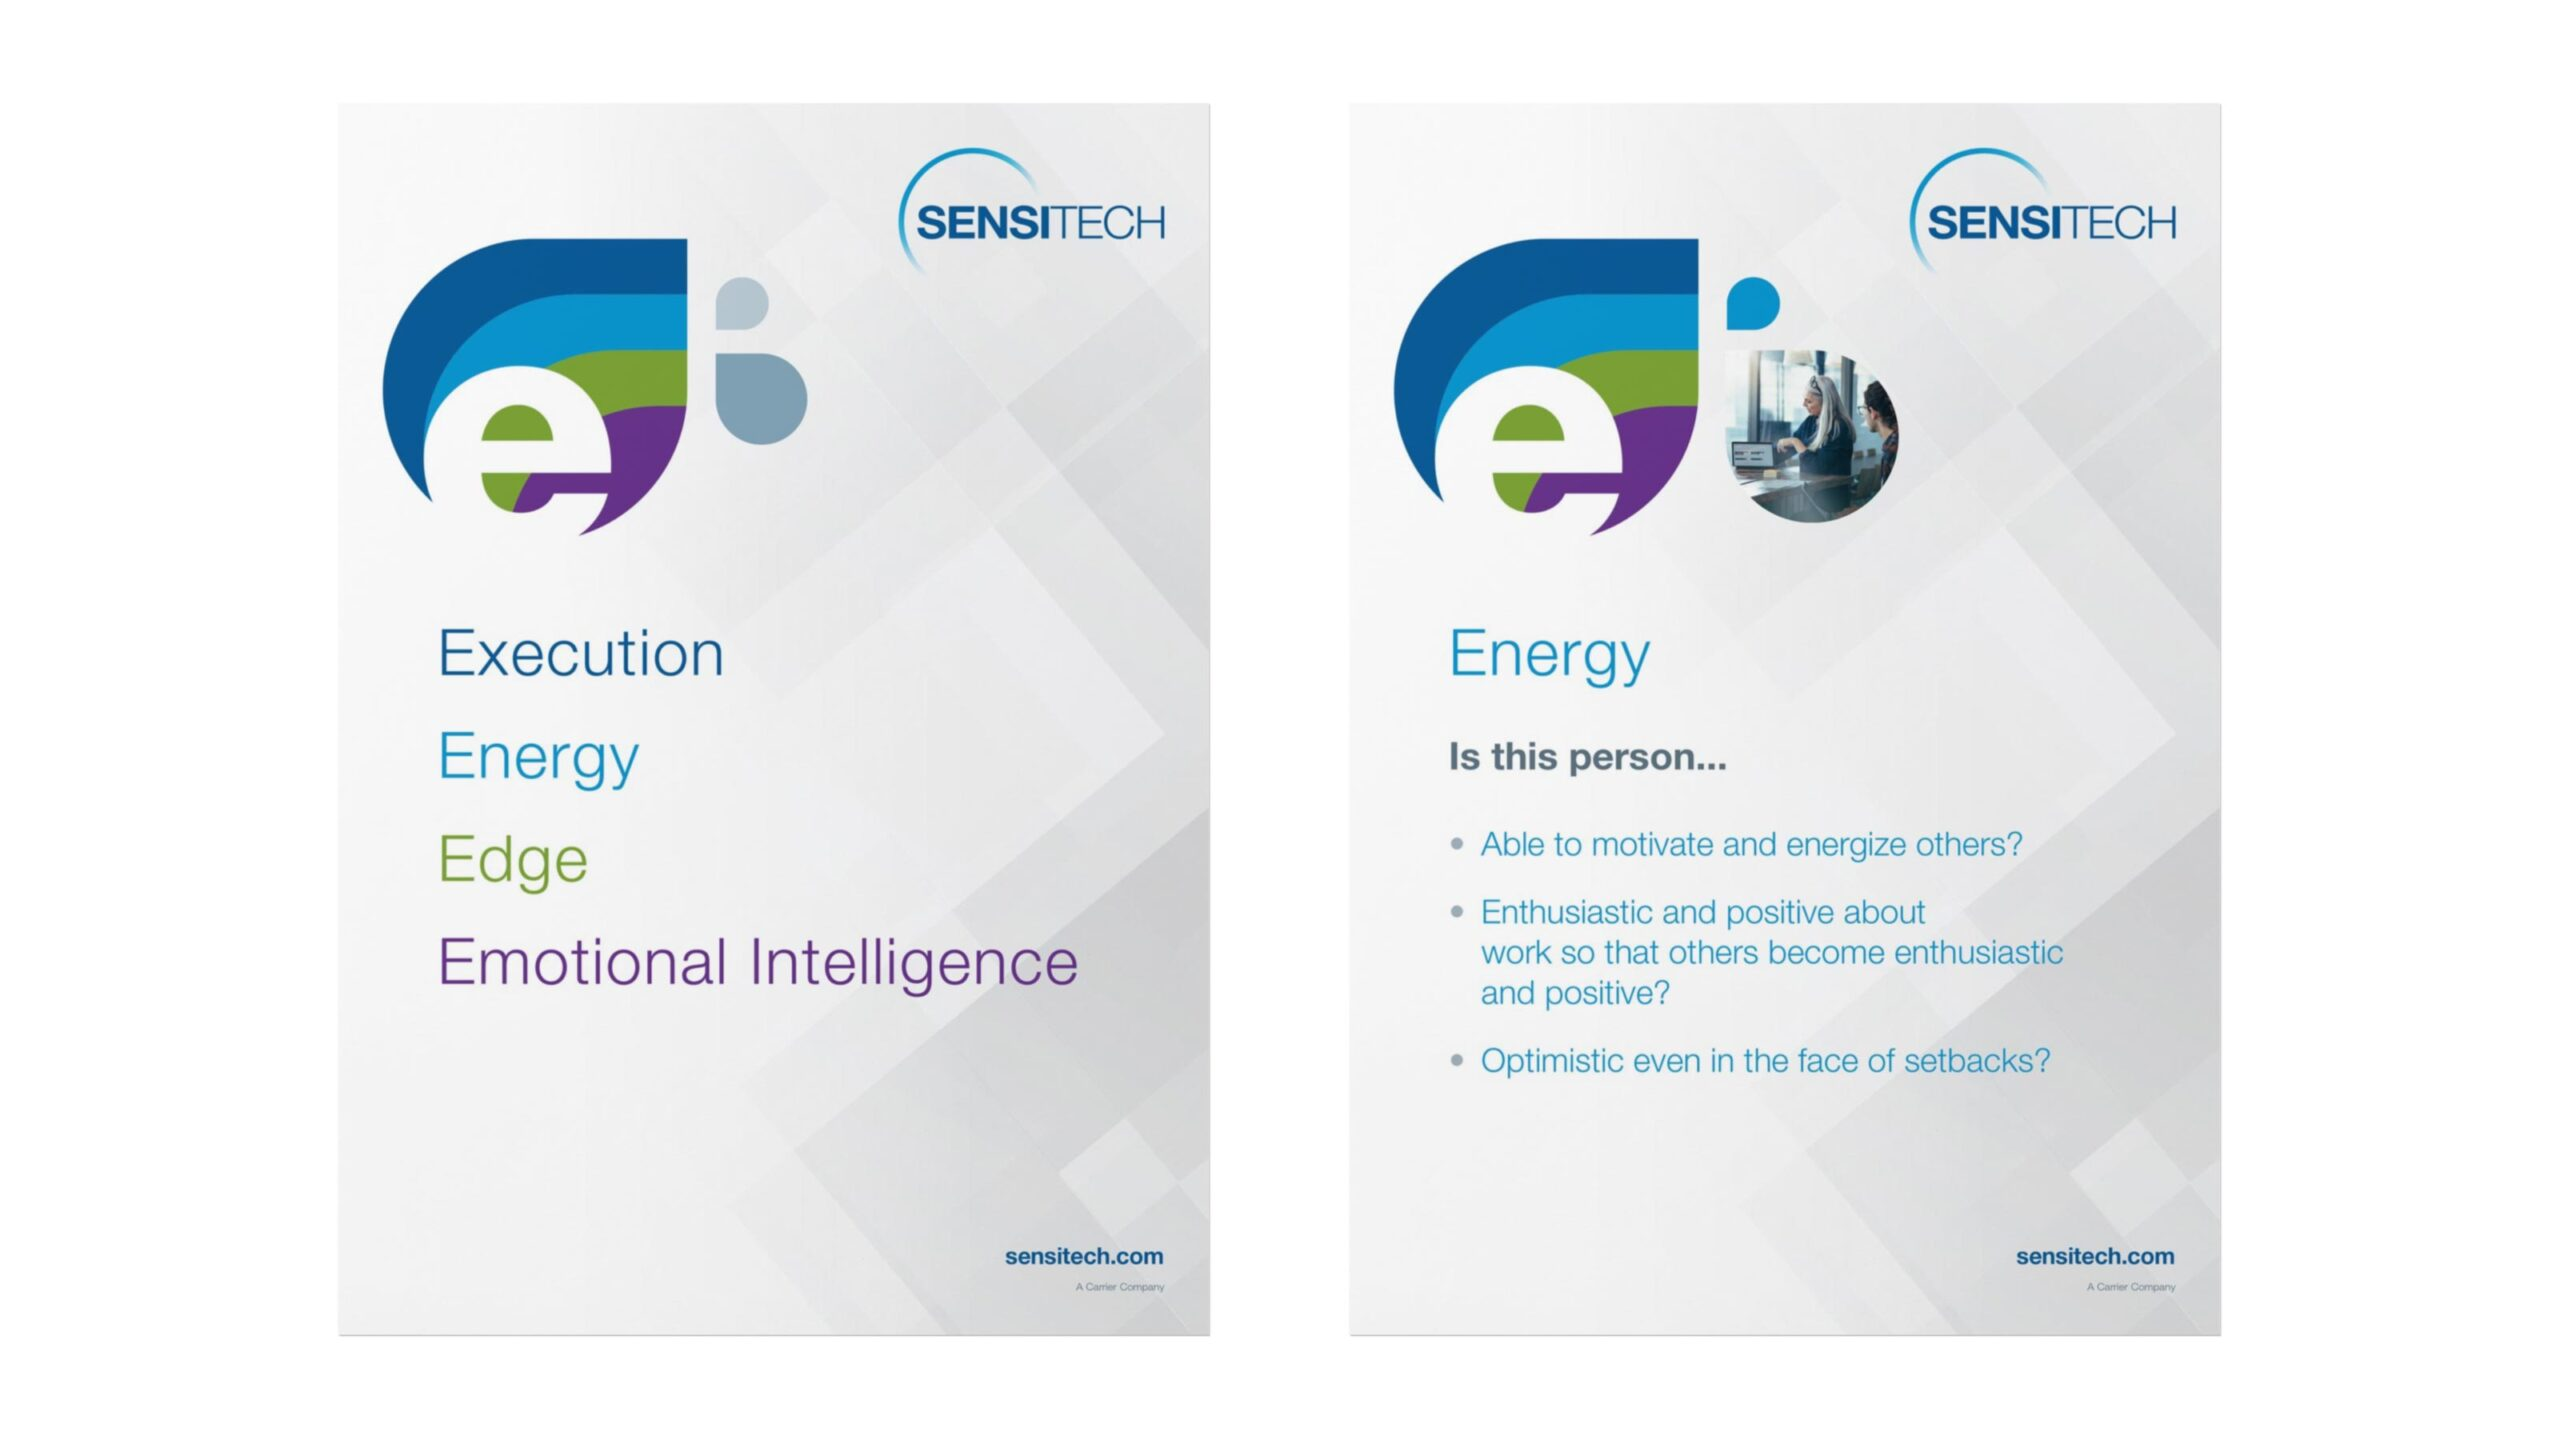 Sensitech Values Posters